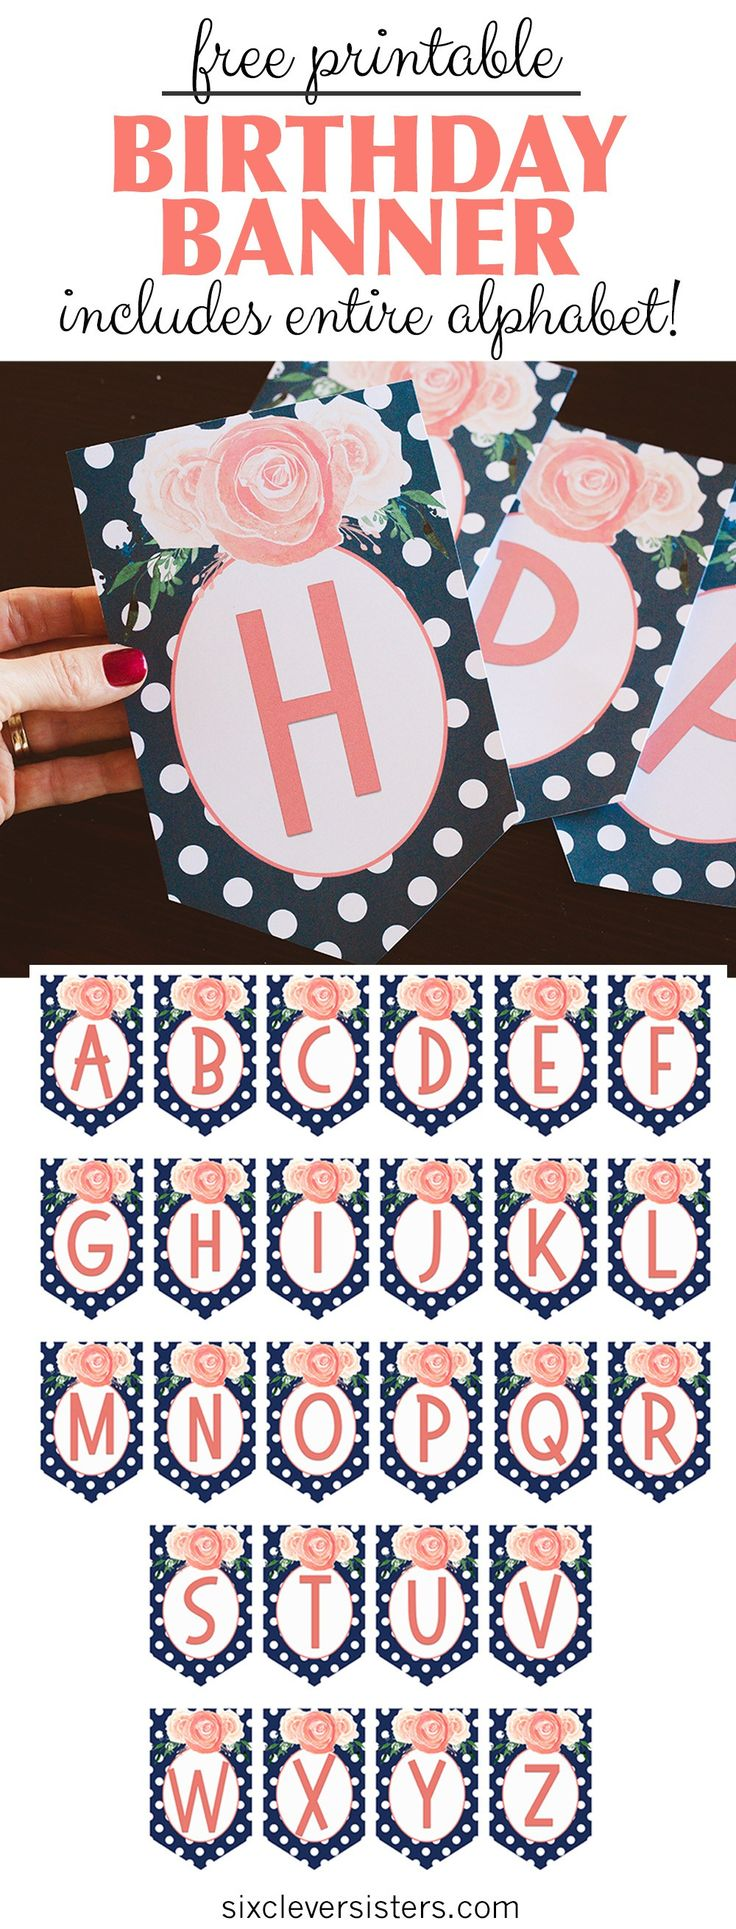 FREE PRINTABLE Happy Birthday Banner and Alphabet! Modern and trendy - black and white stripes with gold foil wreath and bright pink letters!